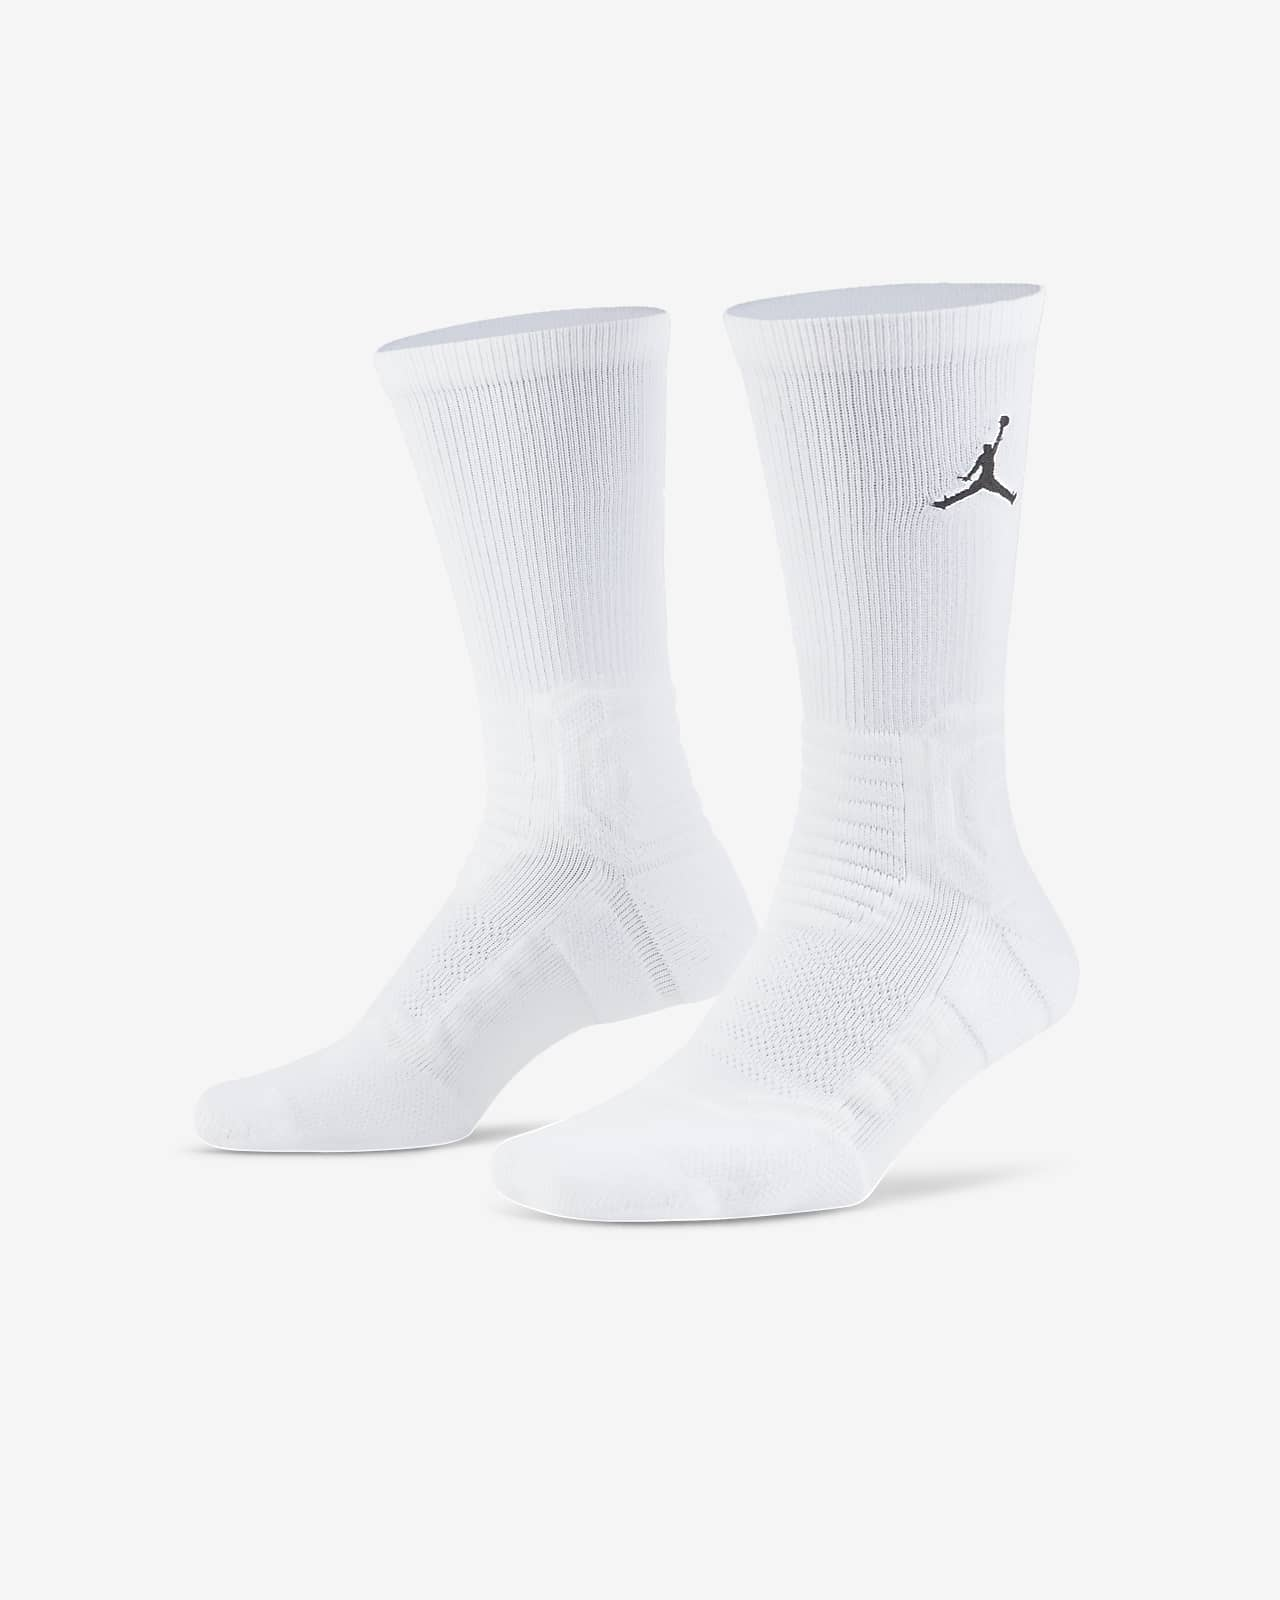 Jordan Flight Crew-Basketballsocken